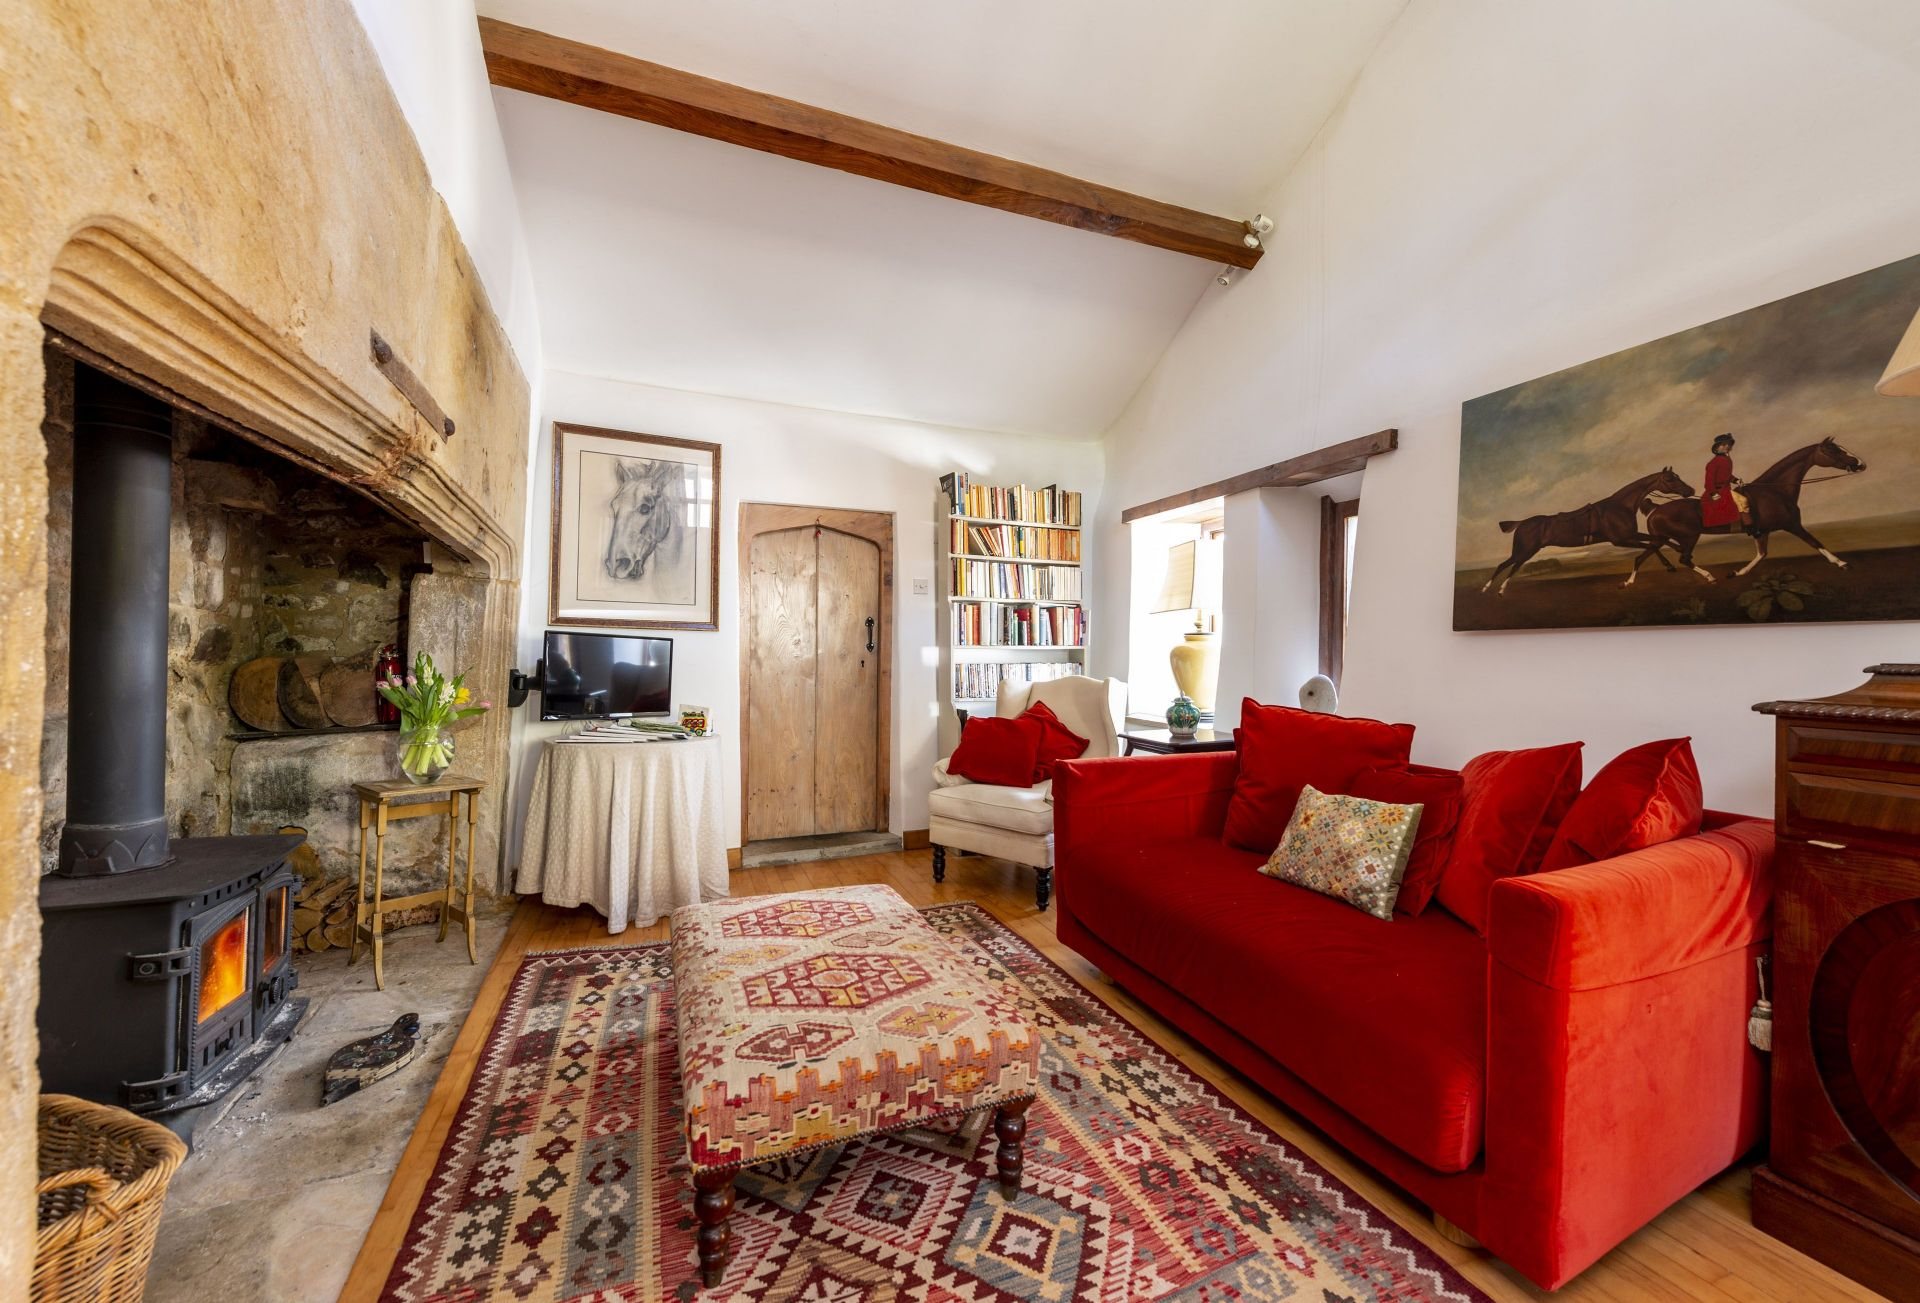 The Retreat is located in Somerset and surrounding villages